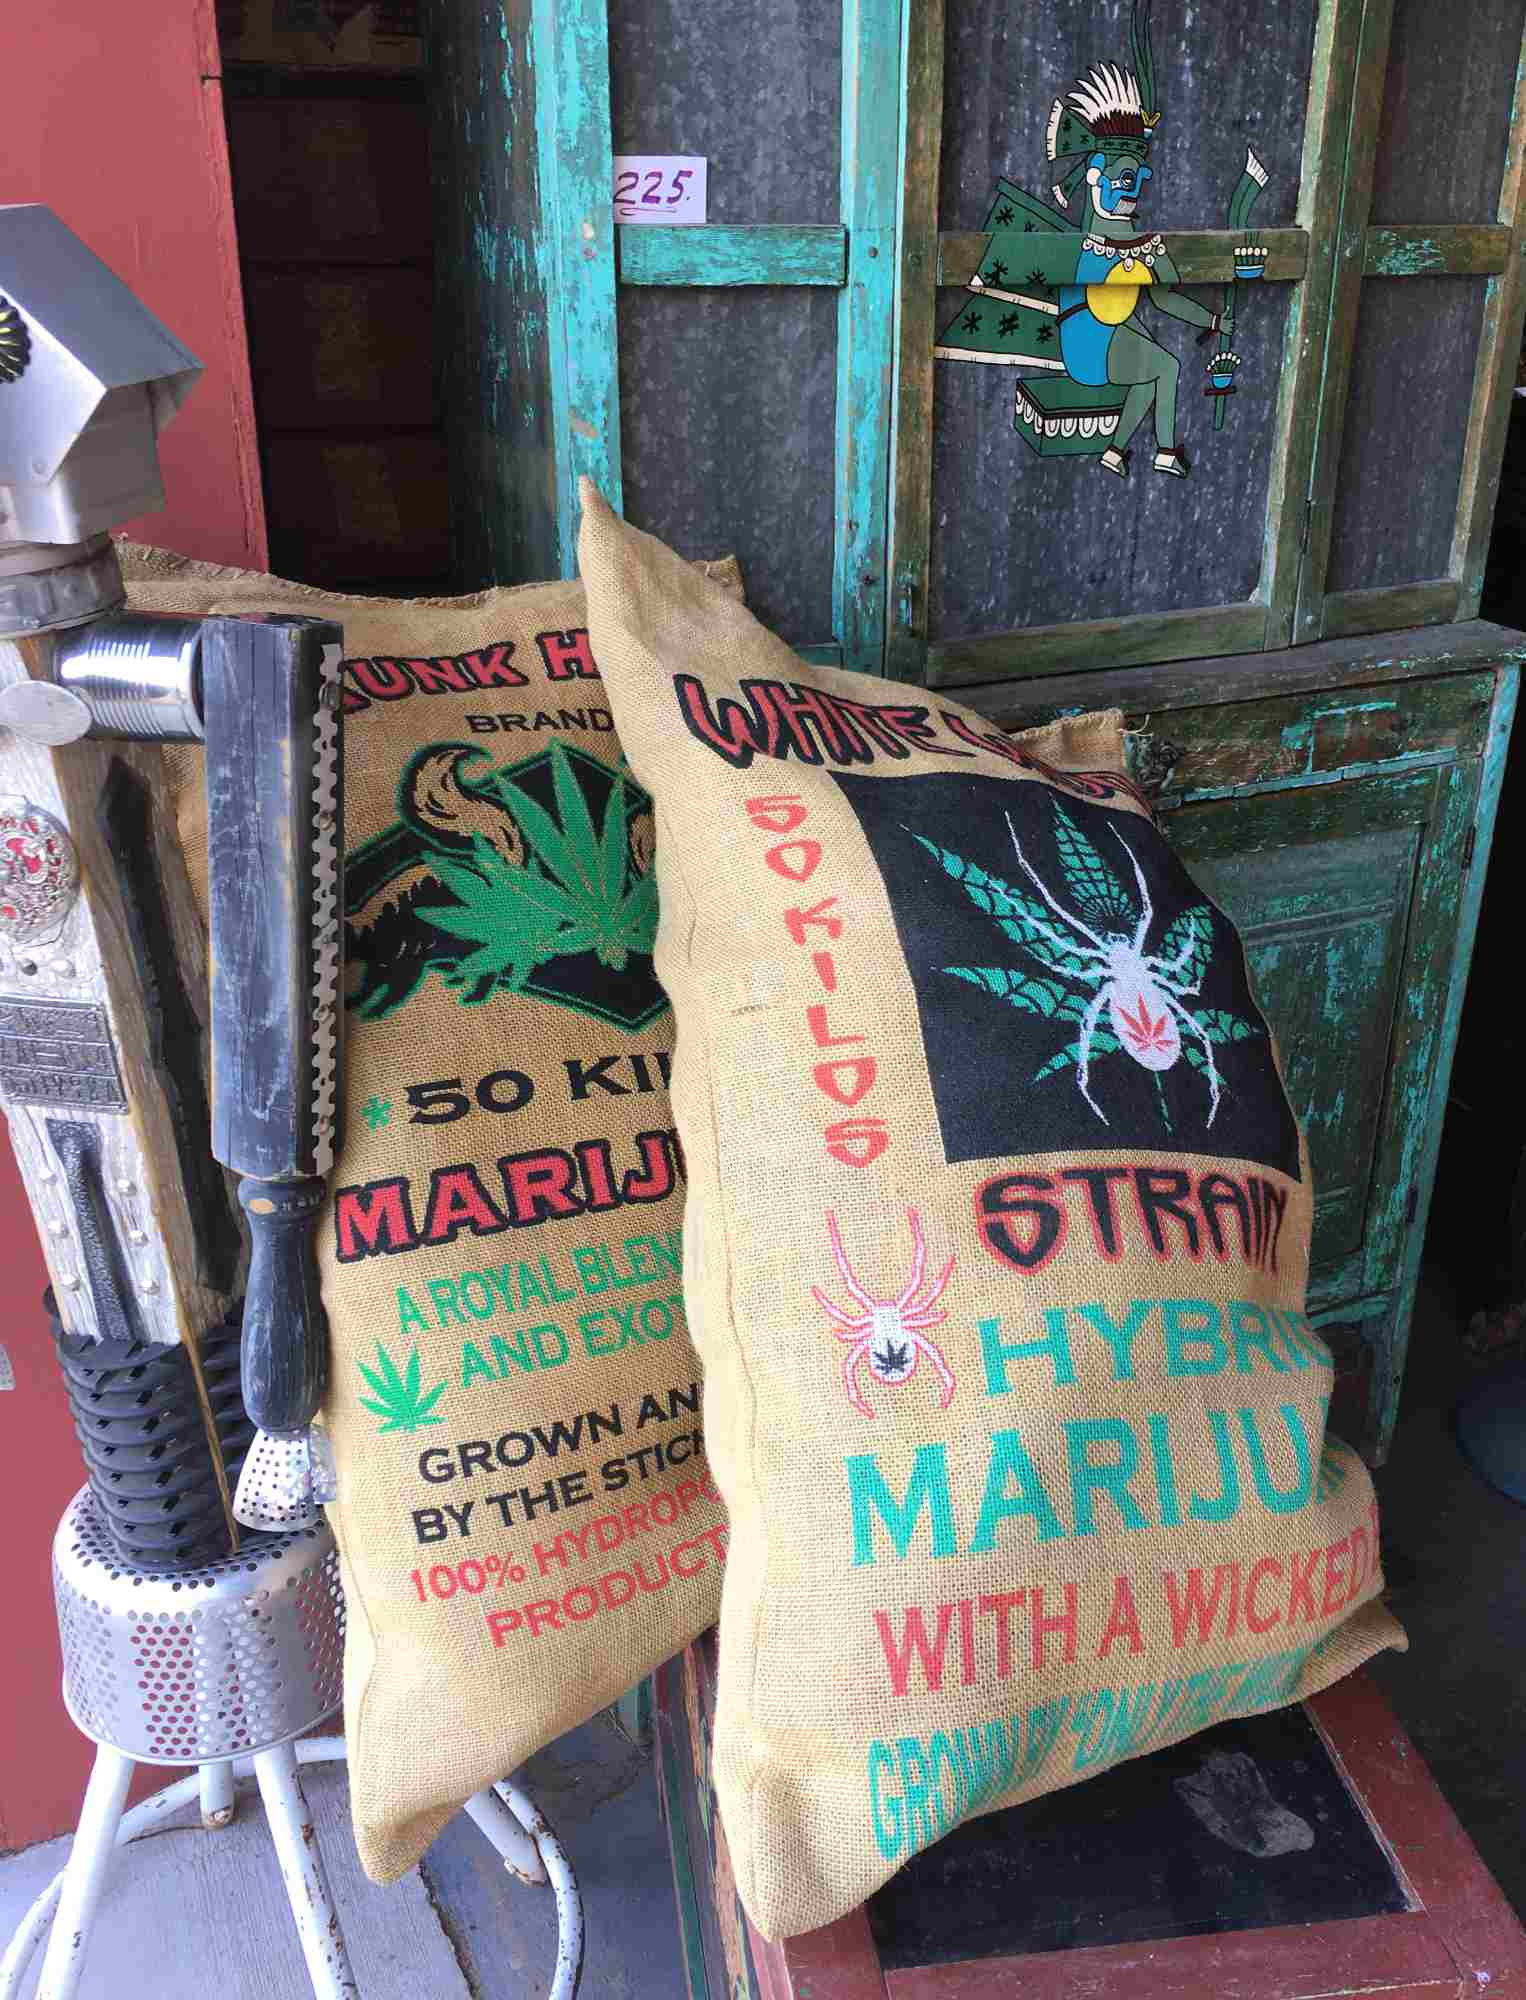 burlap ganja bags at Don's Den Truth or Consequences